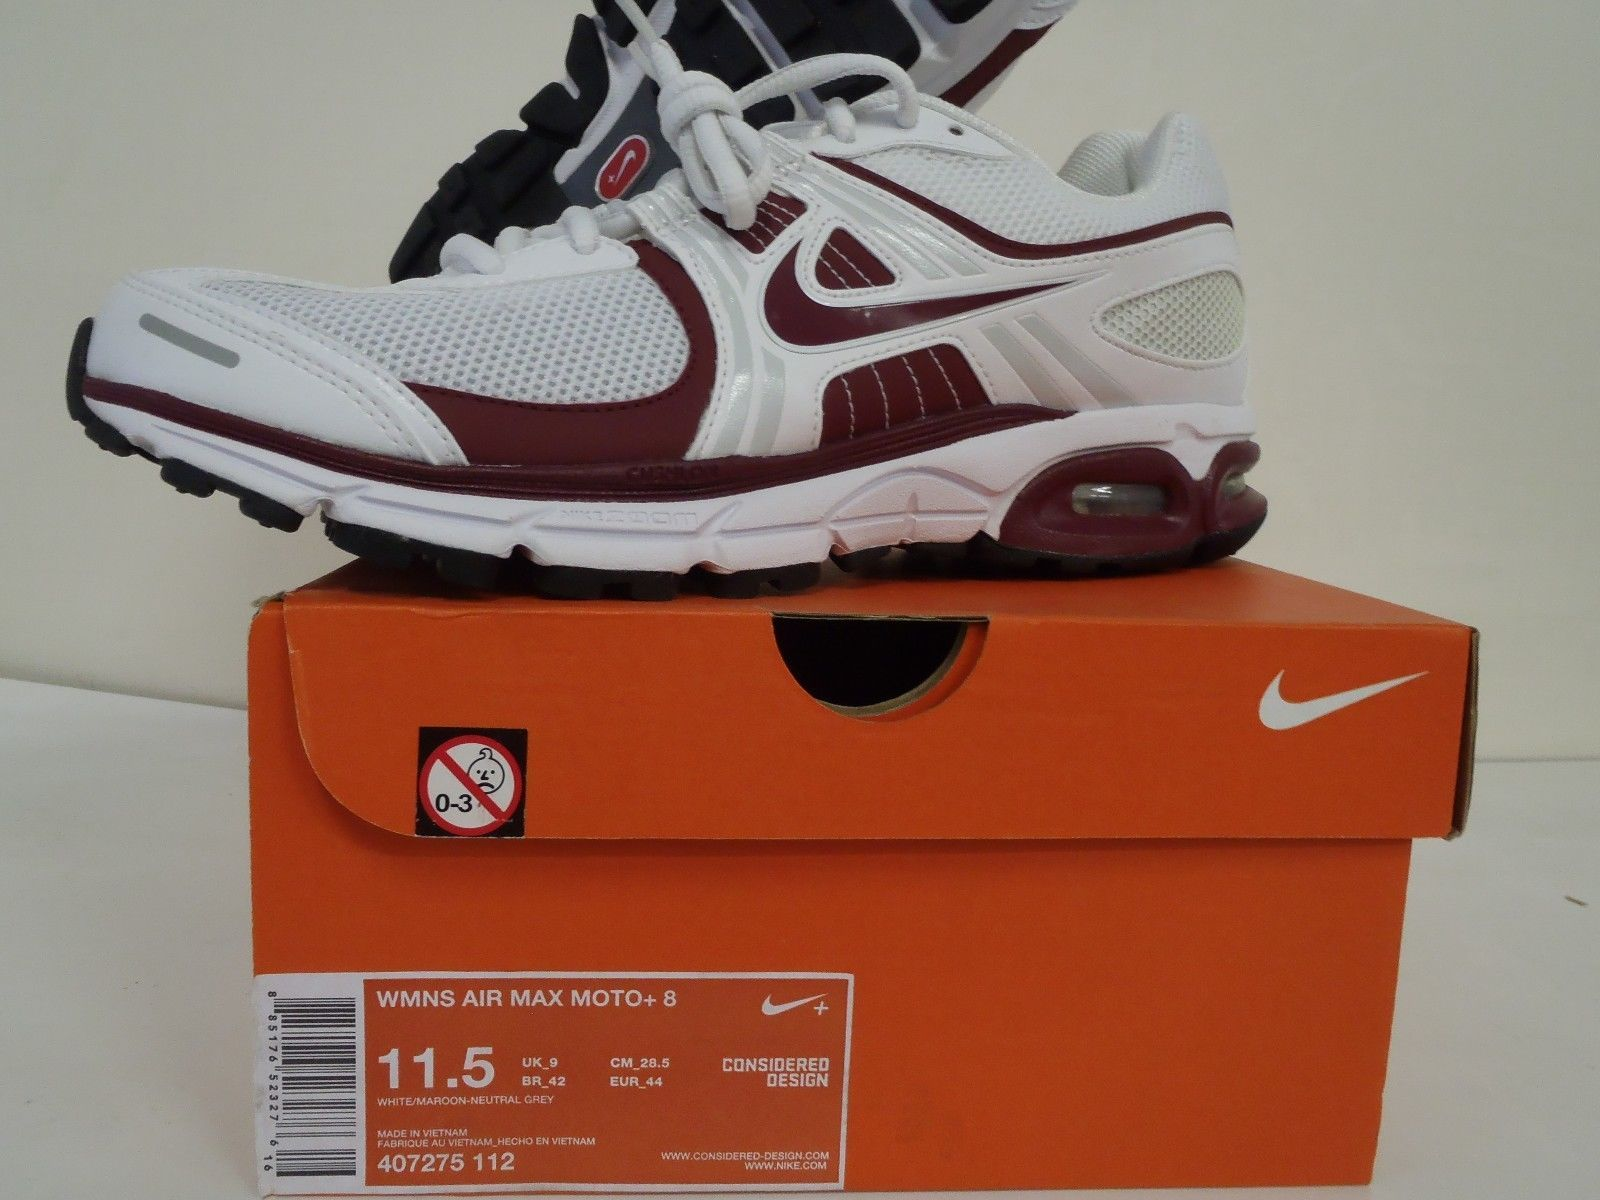 huge selection of 00449 0caff ... Womens Nike Air Max Moto+ 8 Wht Mrn 407275-112 New Wmns Sz 11.5 ...